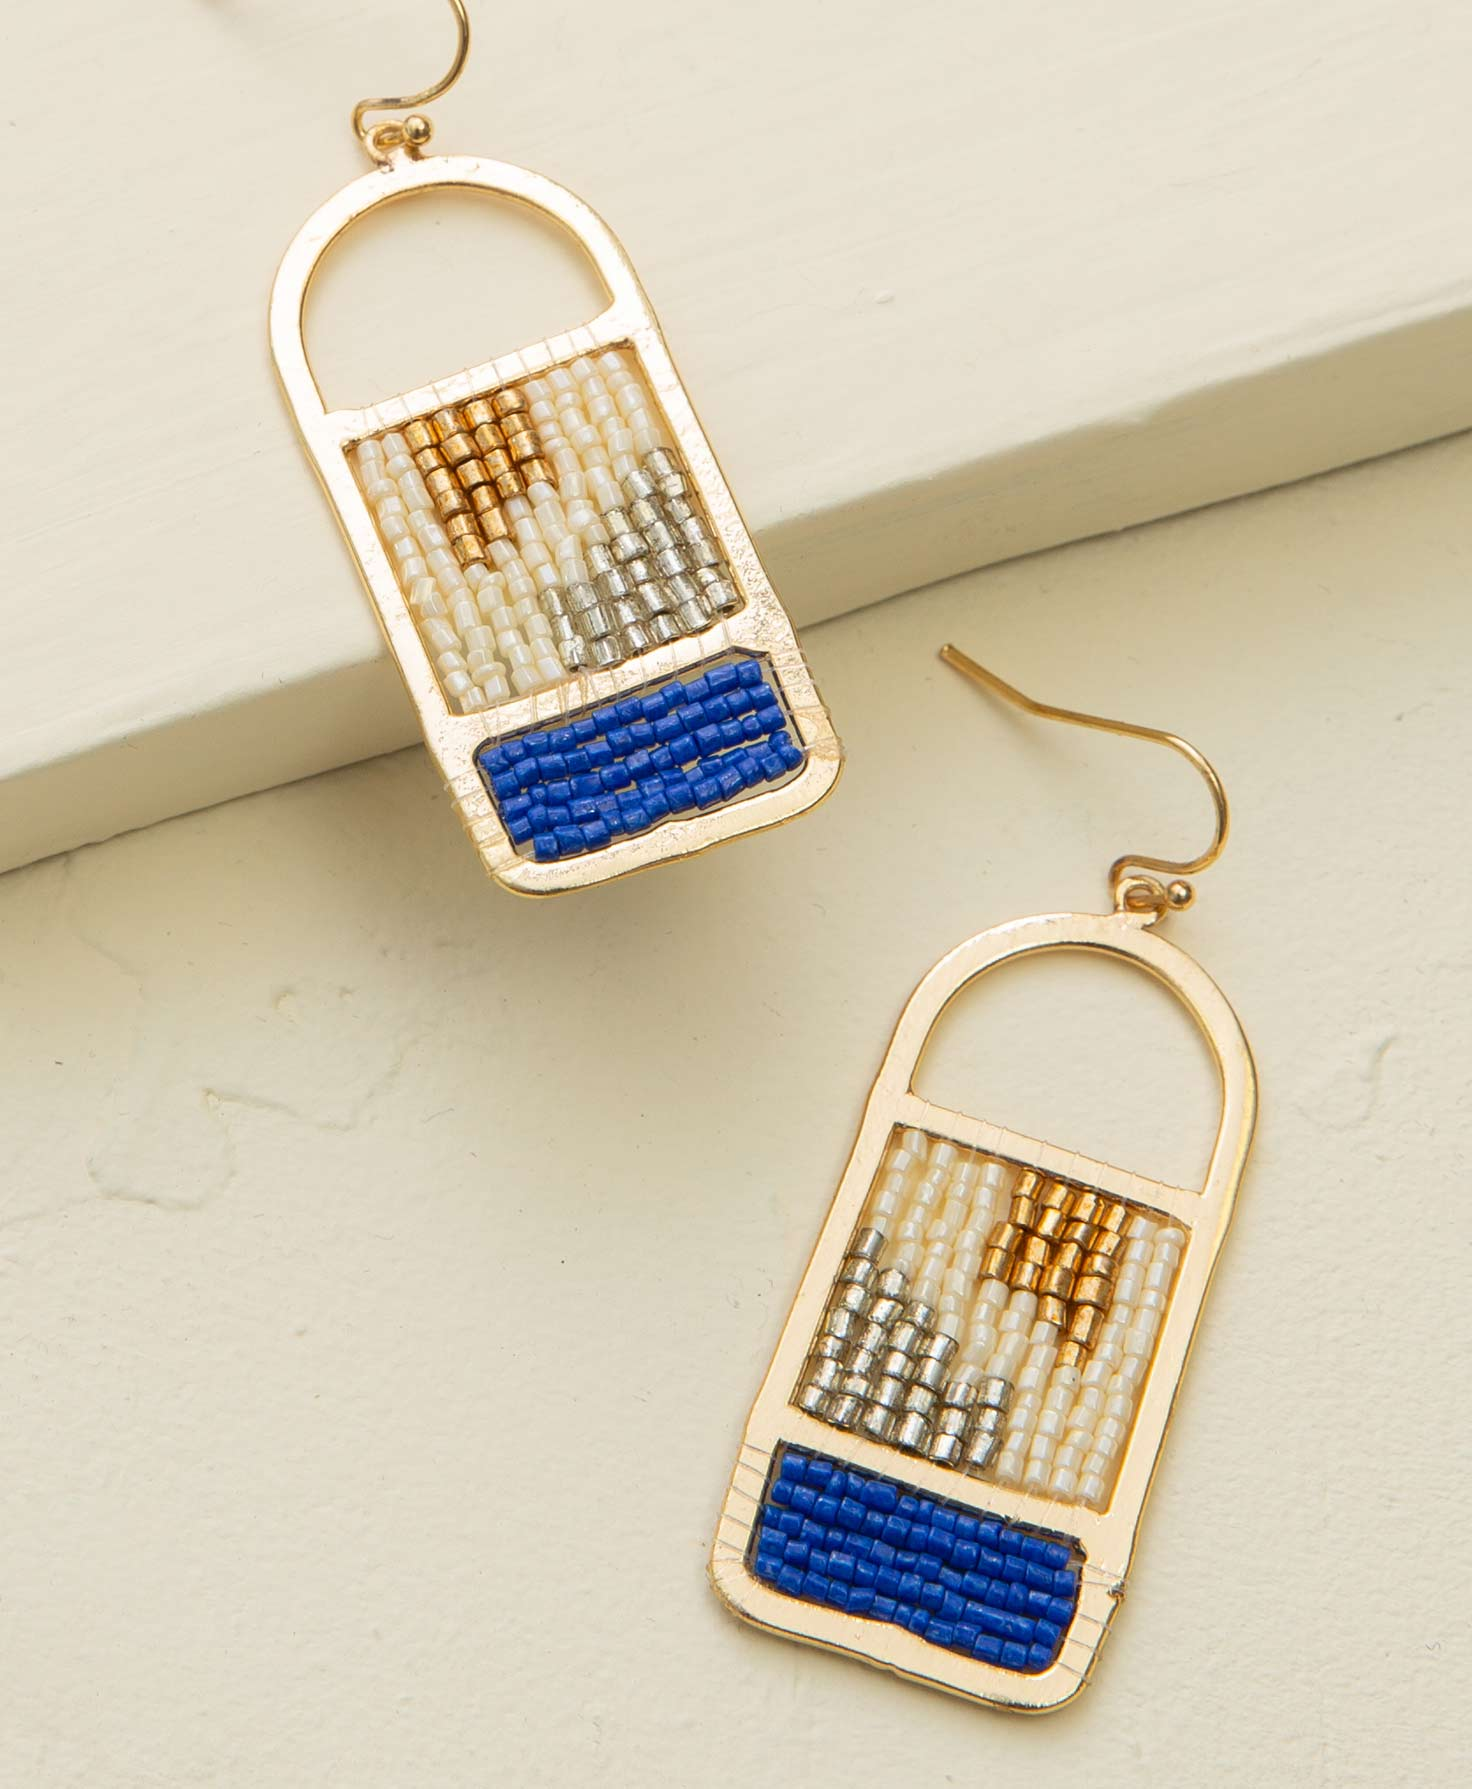 The Peak Earrings lay on a cream-colored platform. A flat brass outline forms a window-like shape. Silver, gold, and cream glass beads are strung across the inside of the window to form a geometric pattern. Bright blue glass beads are strung across the bottom part of the window, forming a solid block of blue.